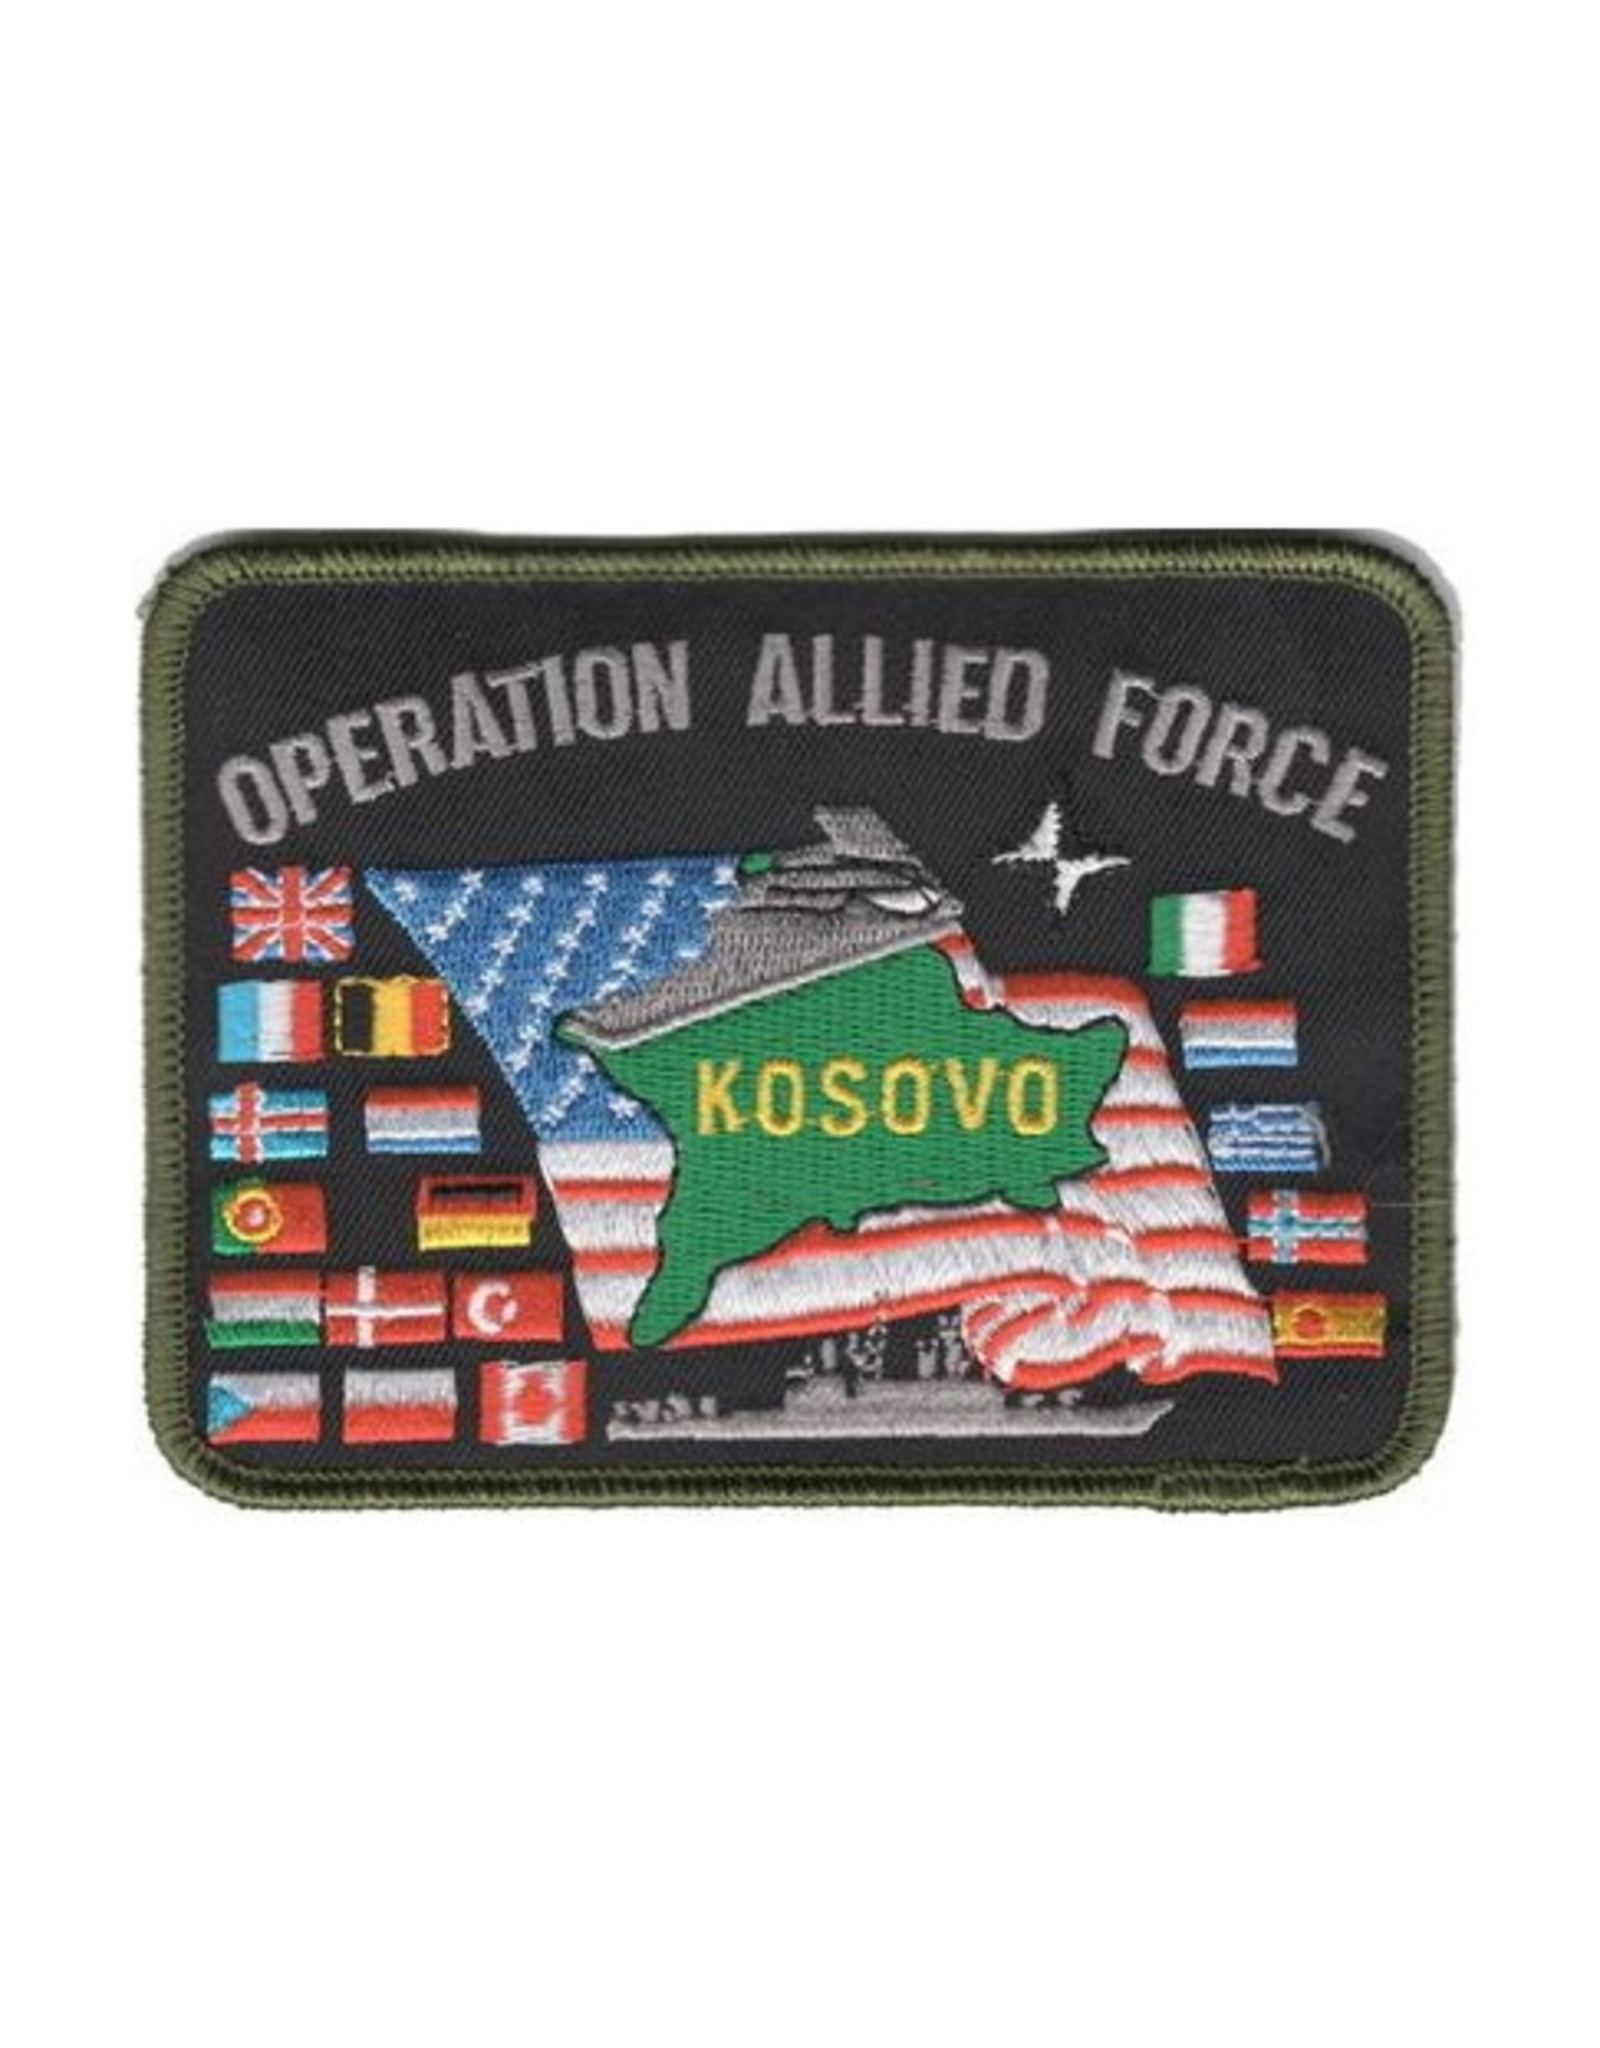 """MidMil Patch Kosovo Operation Allied Force 4.75""""x3.5"""""""